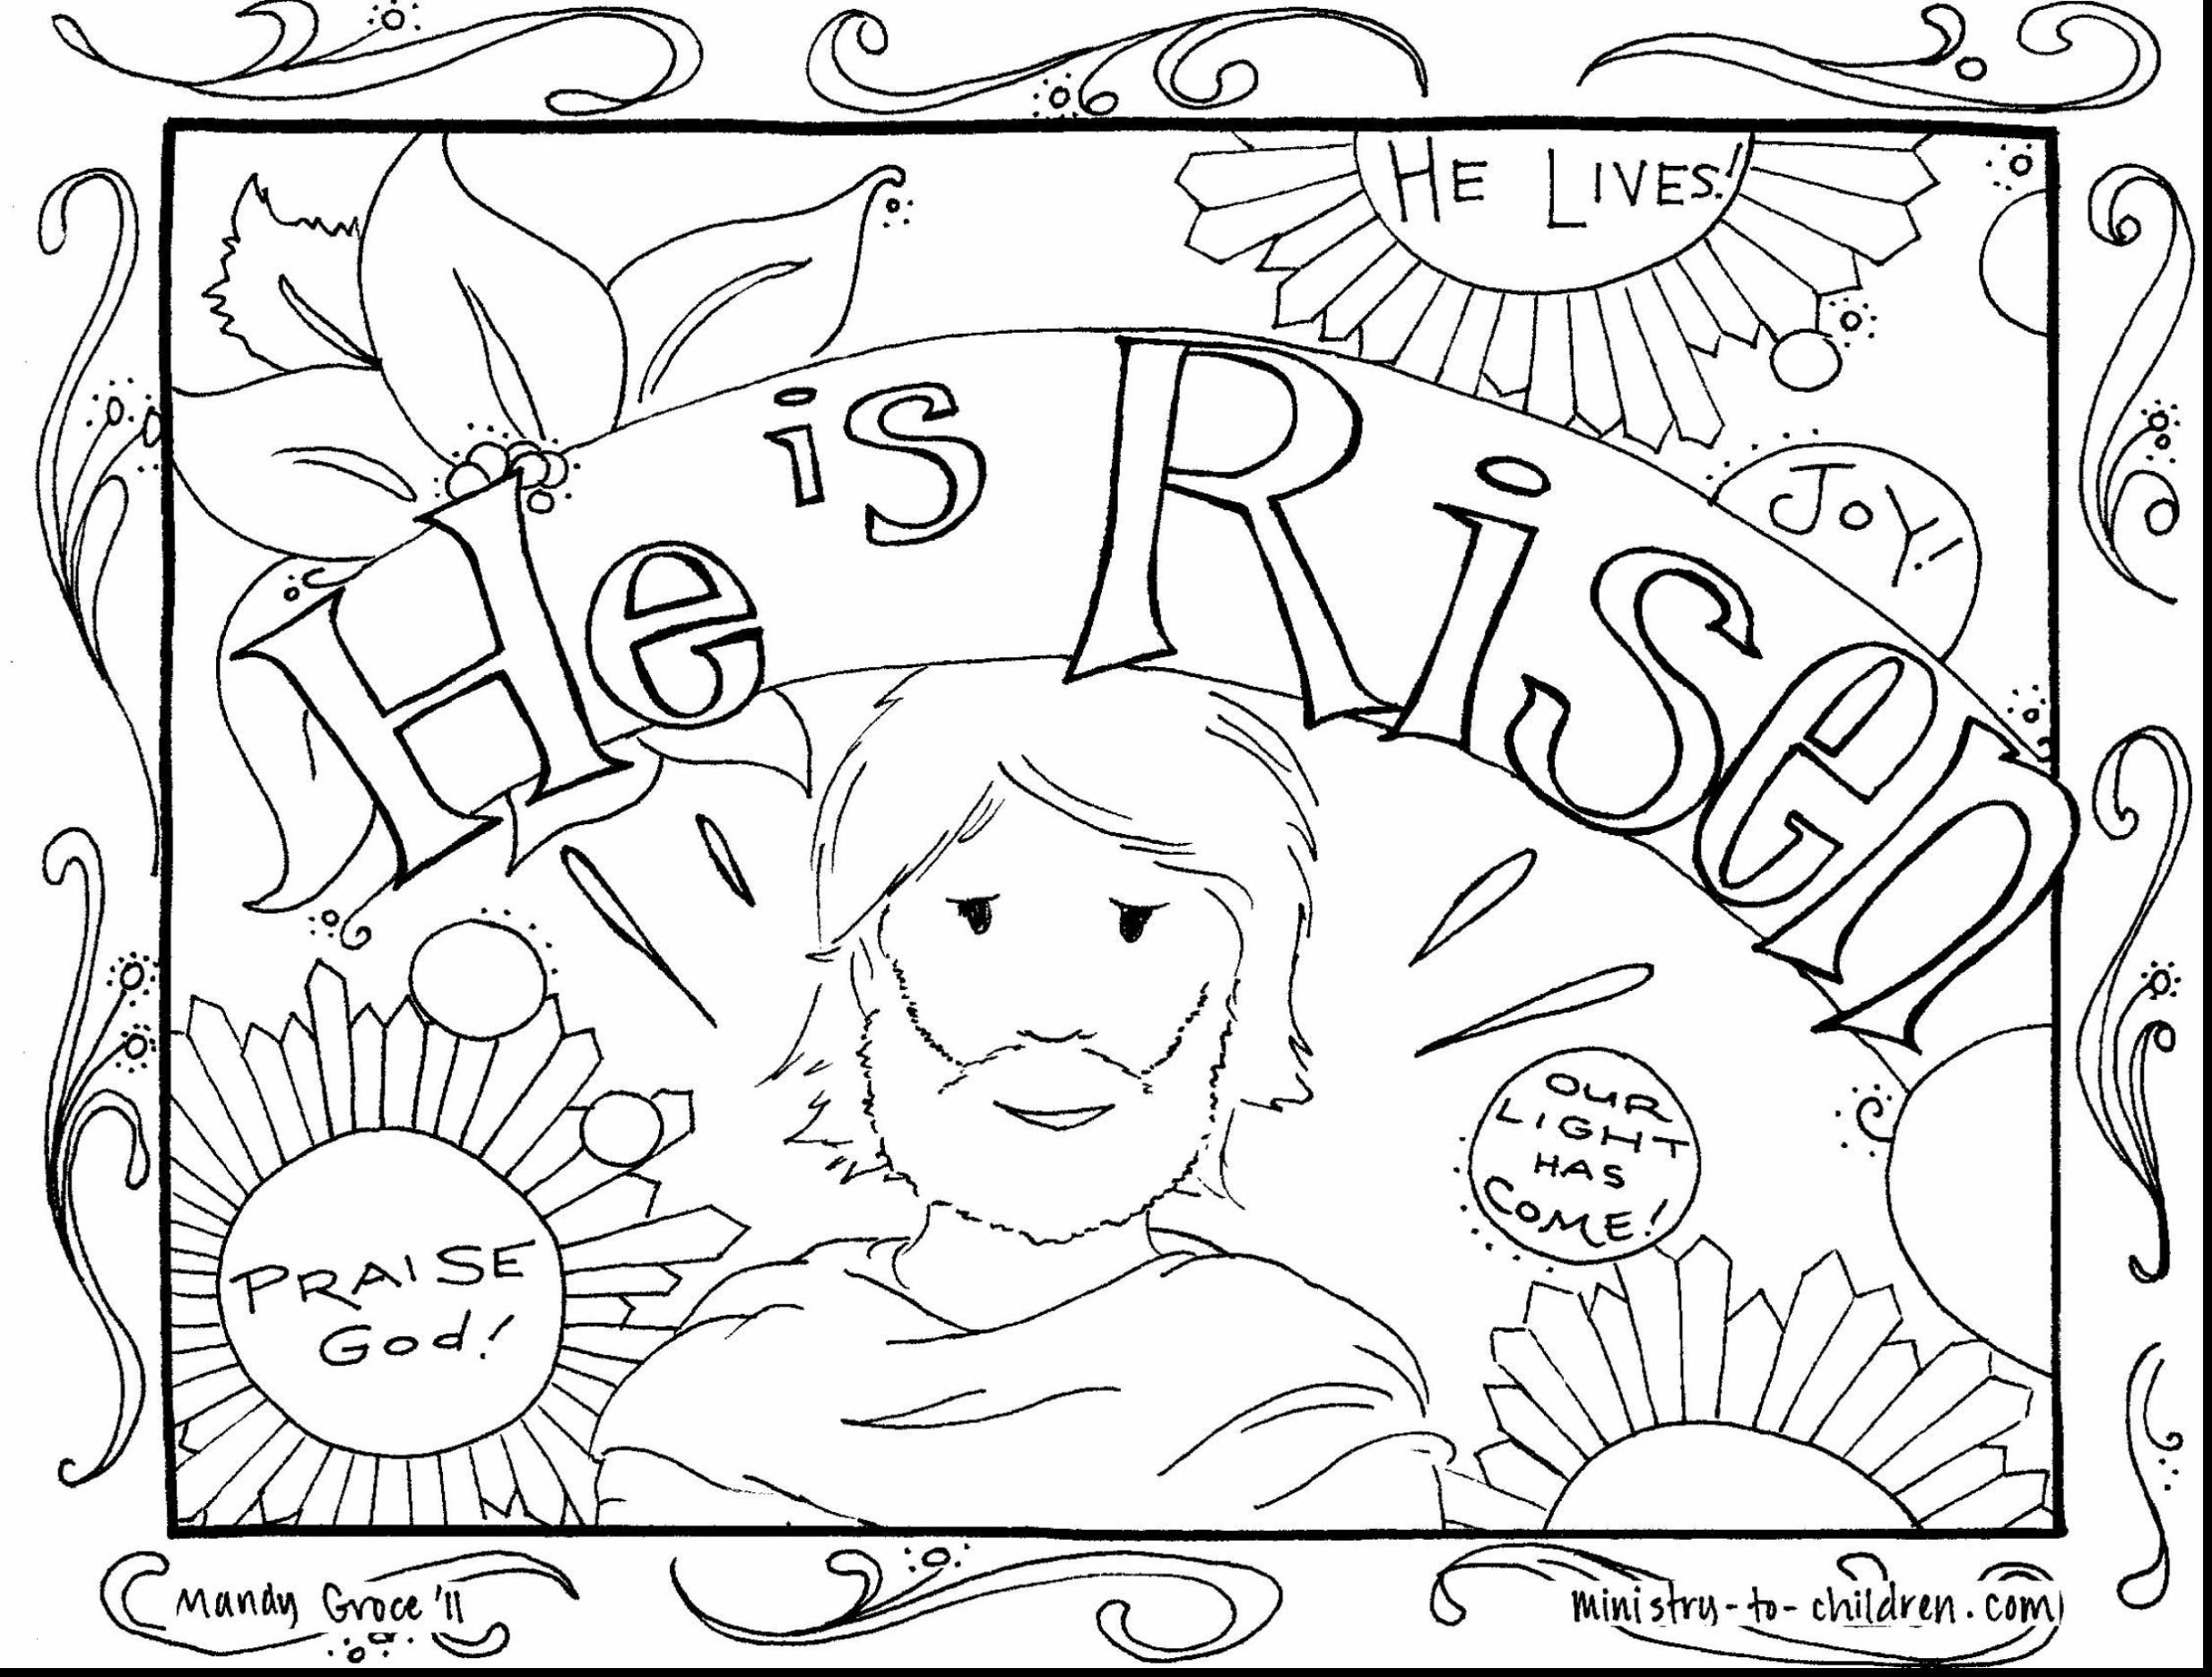 Jesus Heals Coloring Pages  Download 7a - Save it to your computer